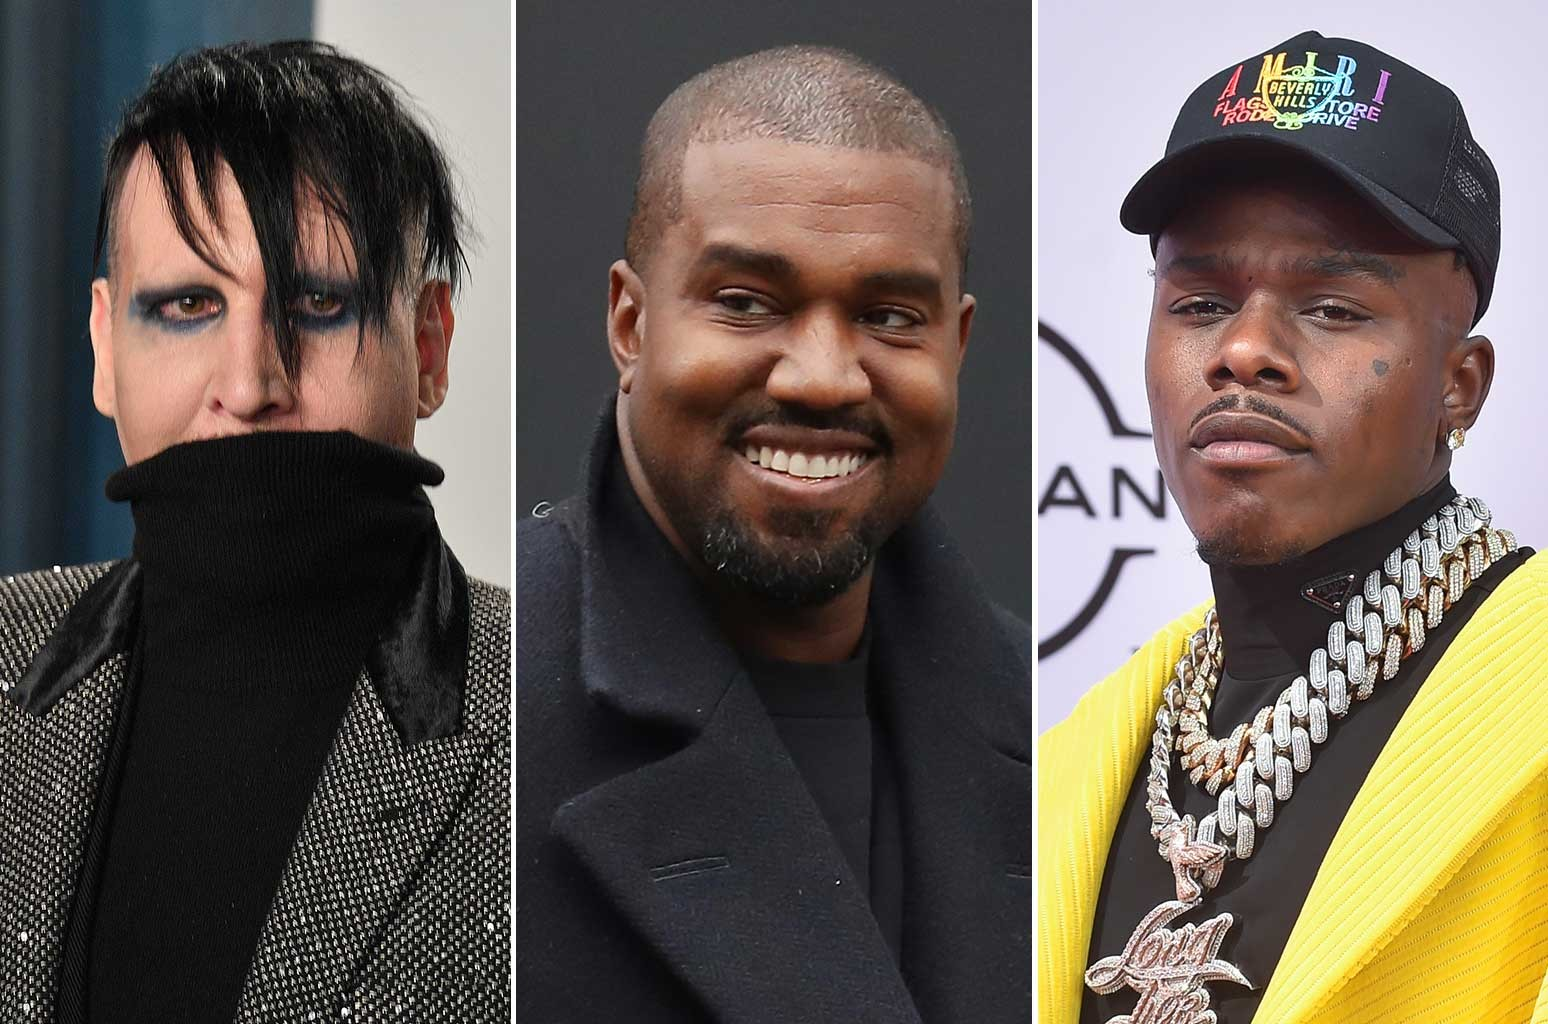 Marilyn Manson, Kanye West and DaBaby